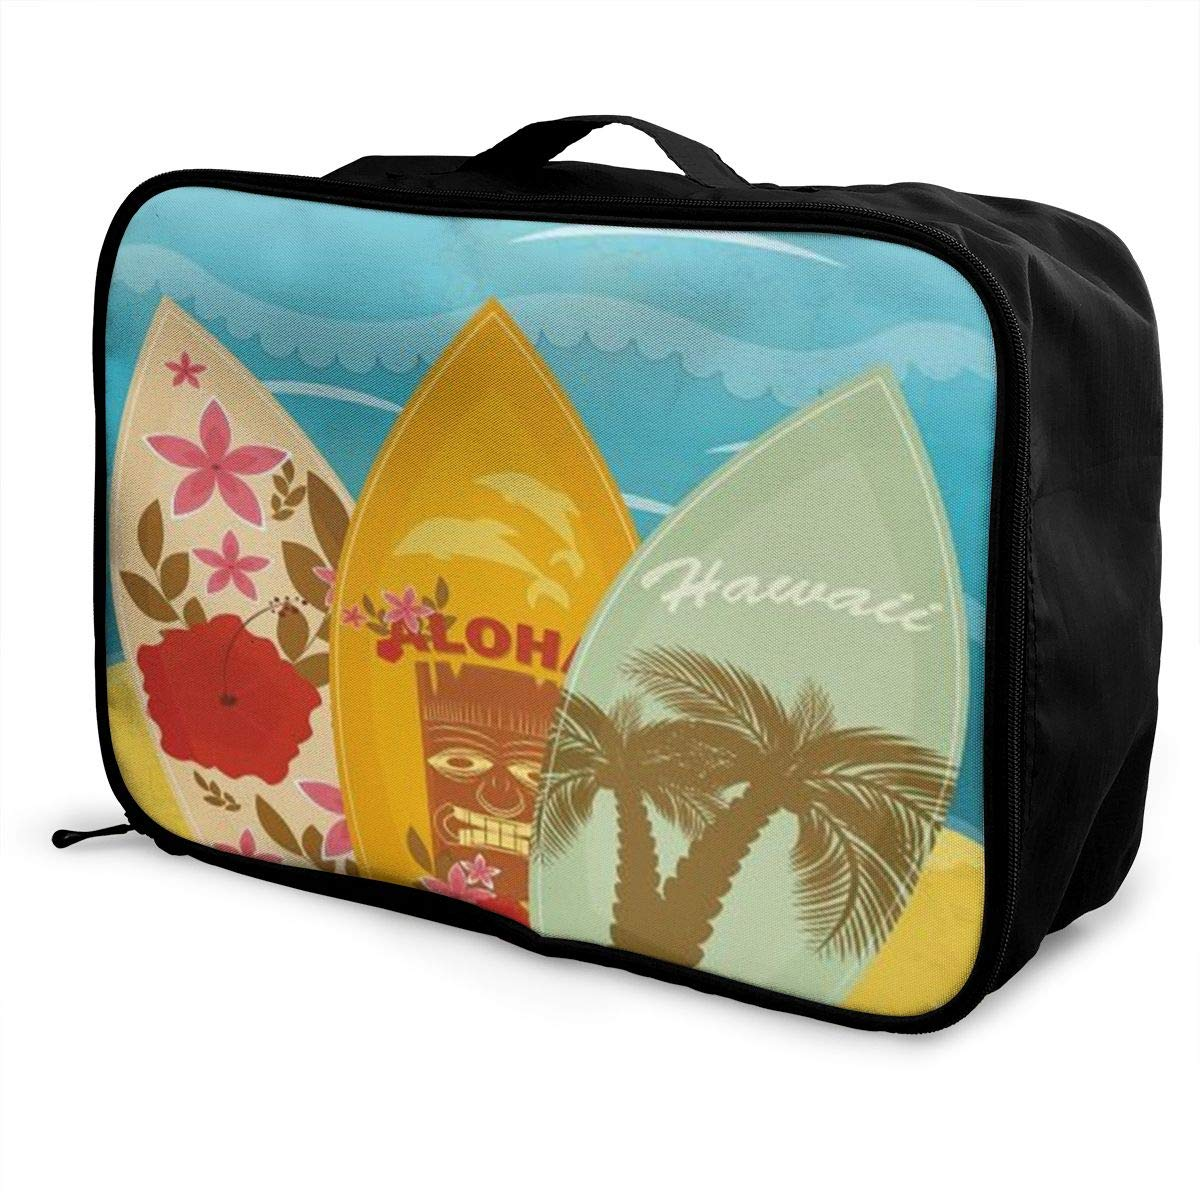 ADGAI Hawaiian Beach Surfboards On Sand Canvas Travel Weekender Bag,Fashion Custom Lightweight Large Capacity Portable Luggage Bag,Suitcase Trolley Bag